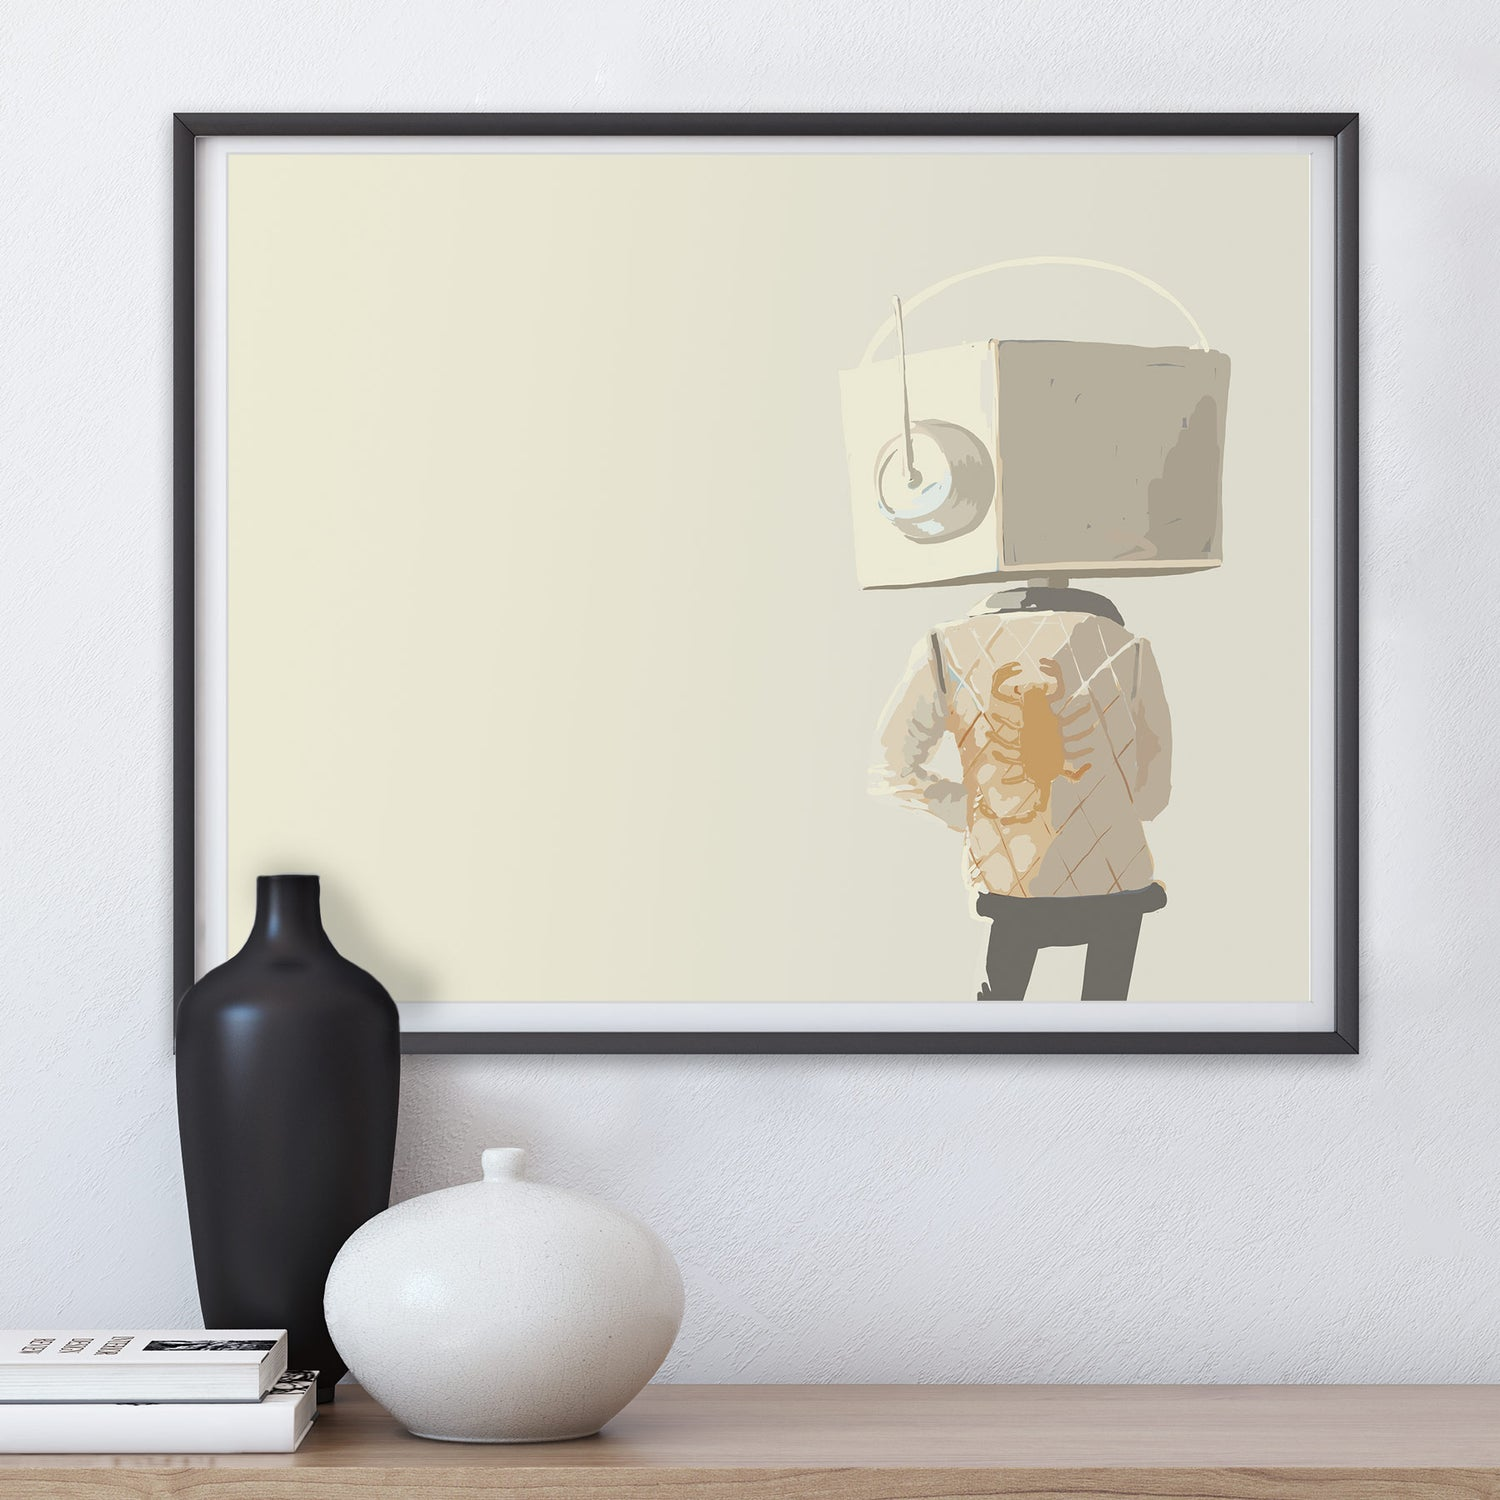 Image of Drive, a Robot Tribute Print